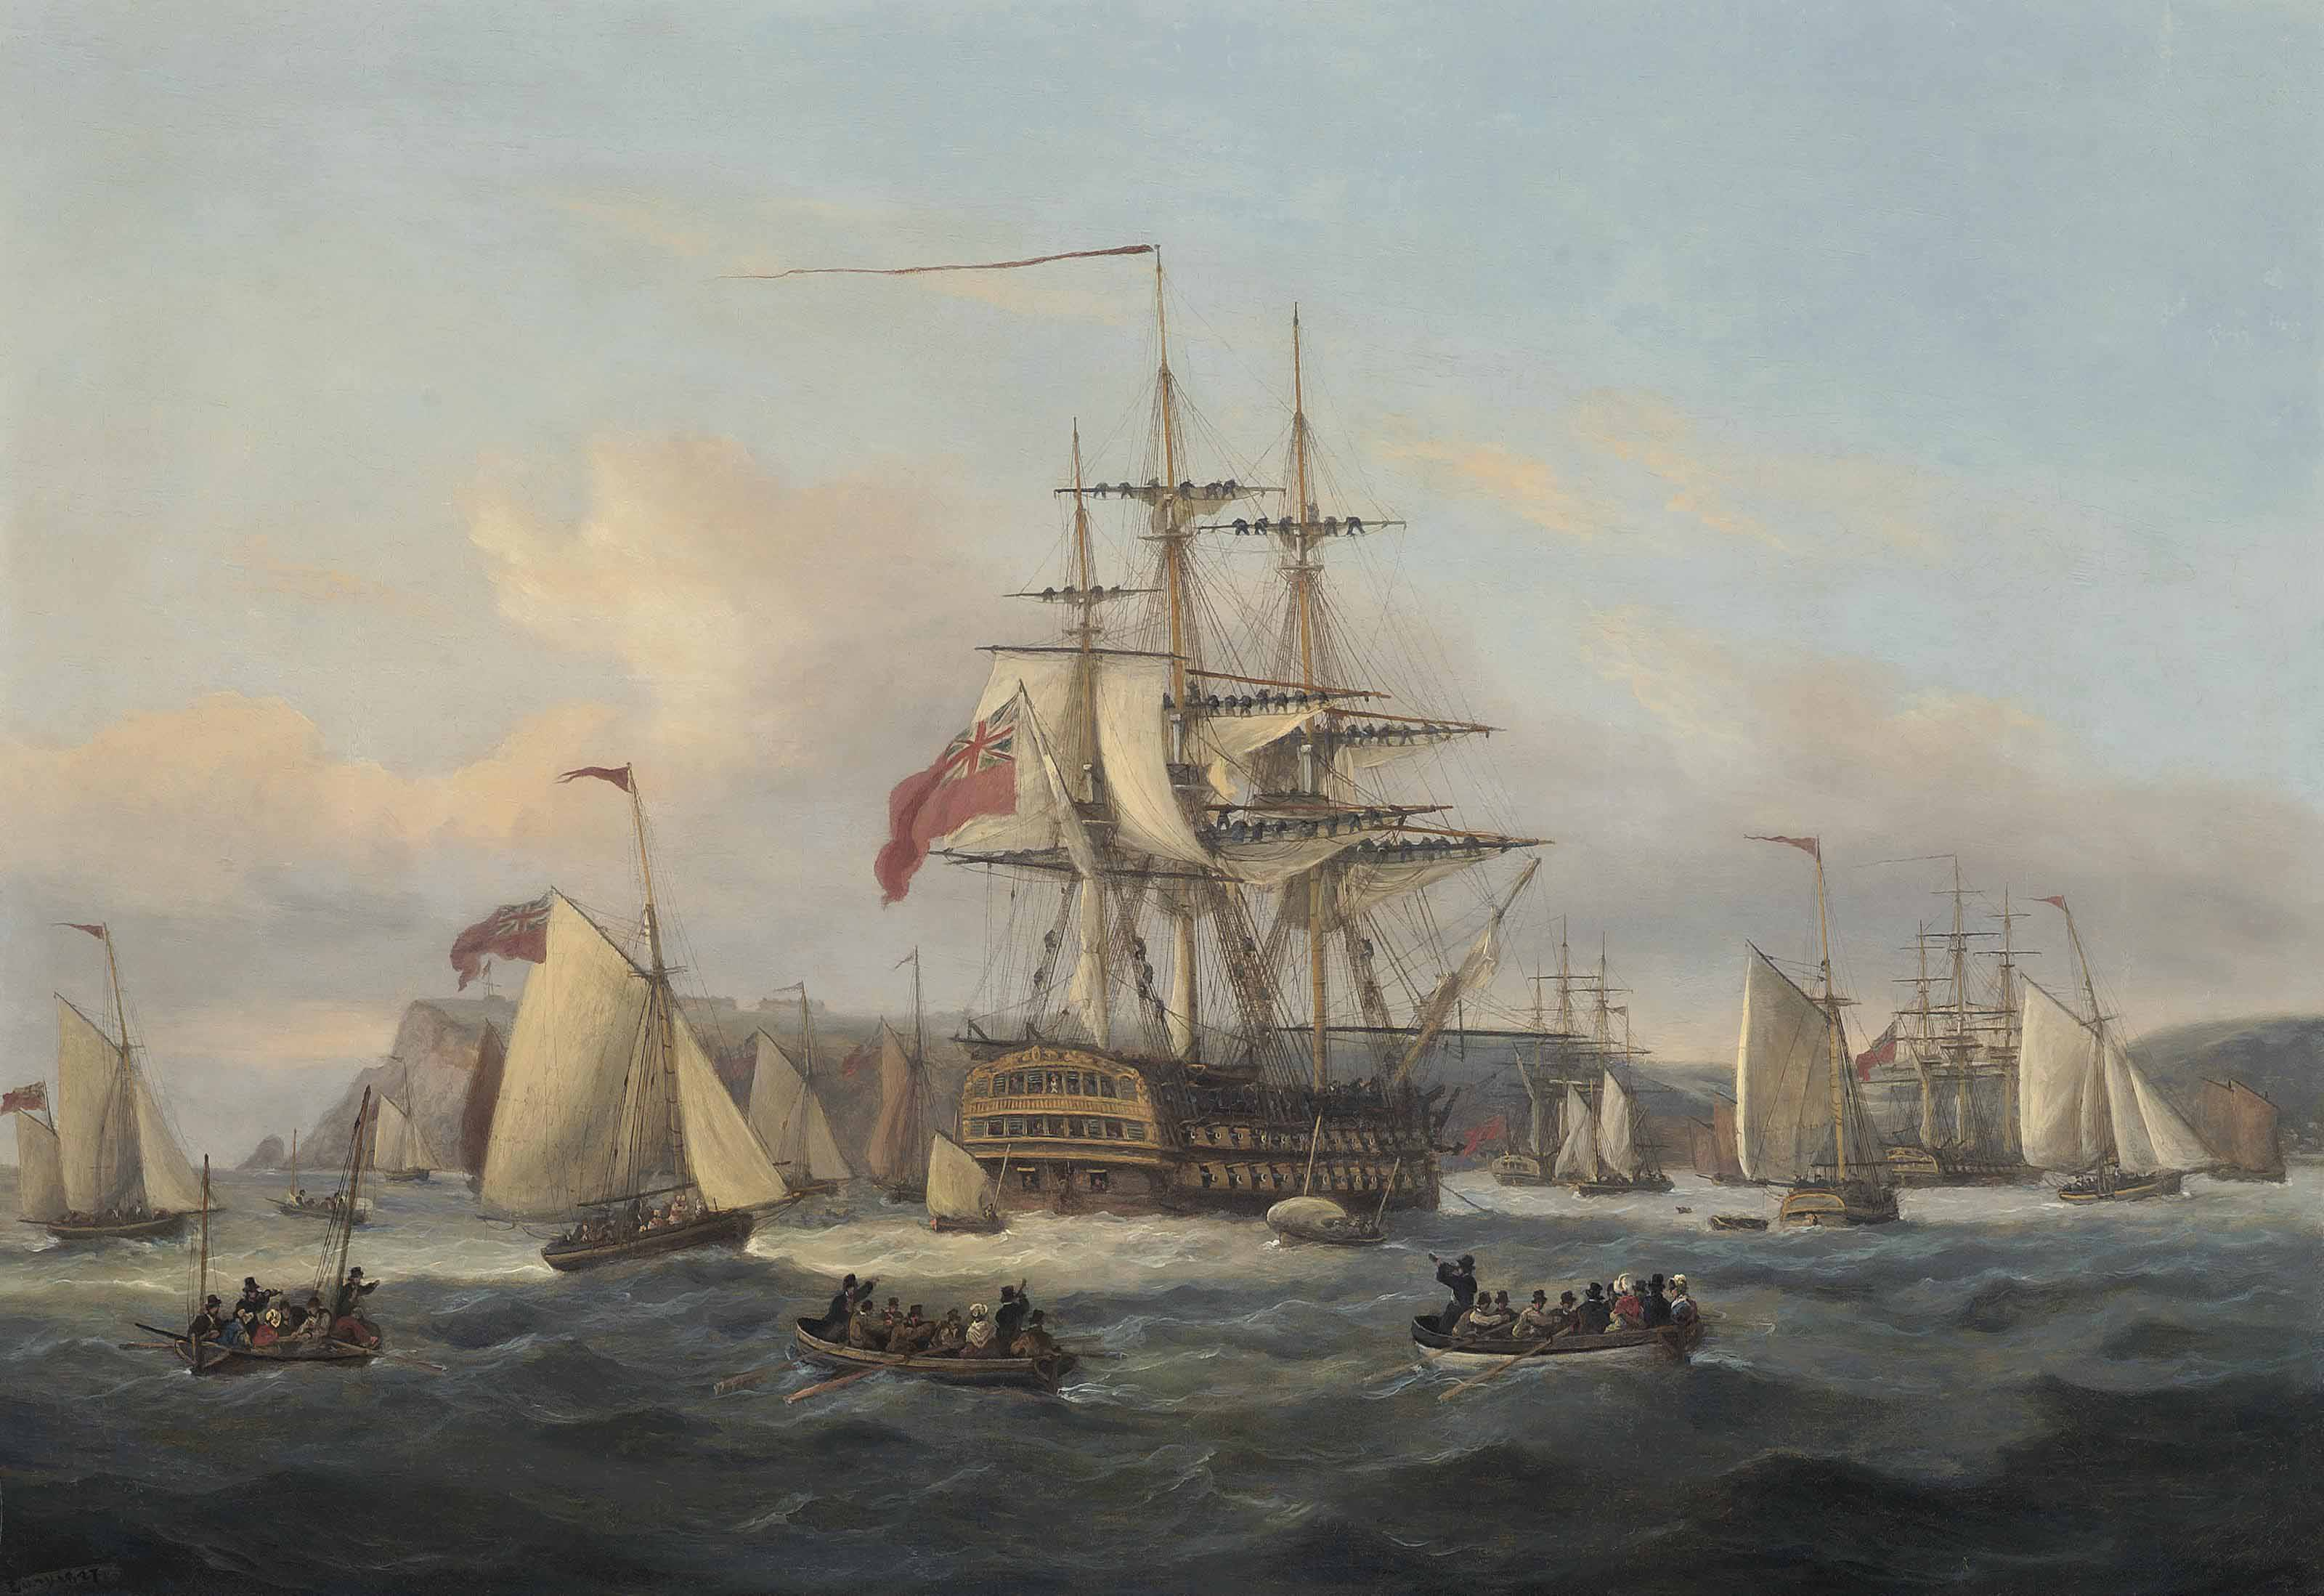 H.M.S. Bellerophon lying at anchor off Berry Head, Torbay with the defeated Emperor Napoleon onboard prior to his transfer onto H.M.S. Northumberland, 6 August 1815